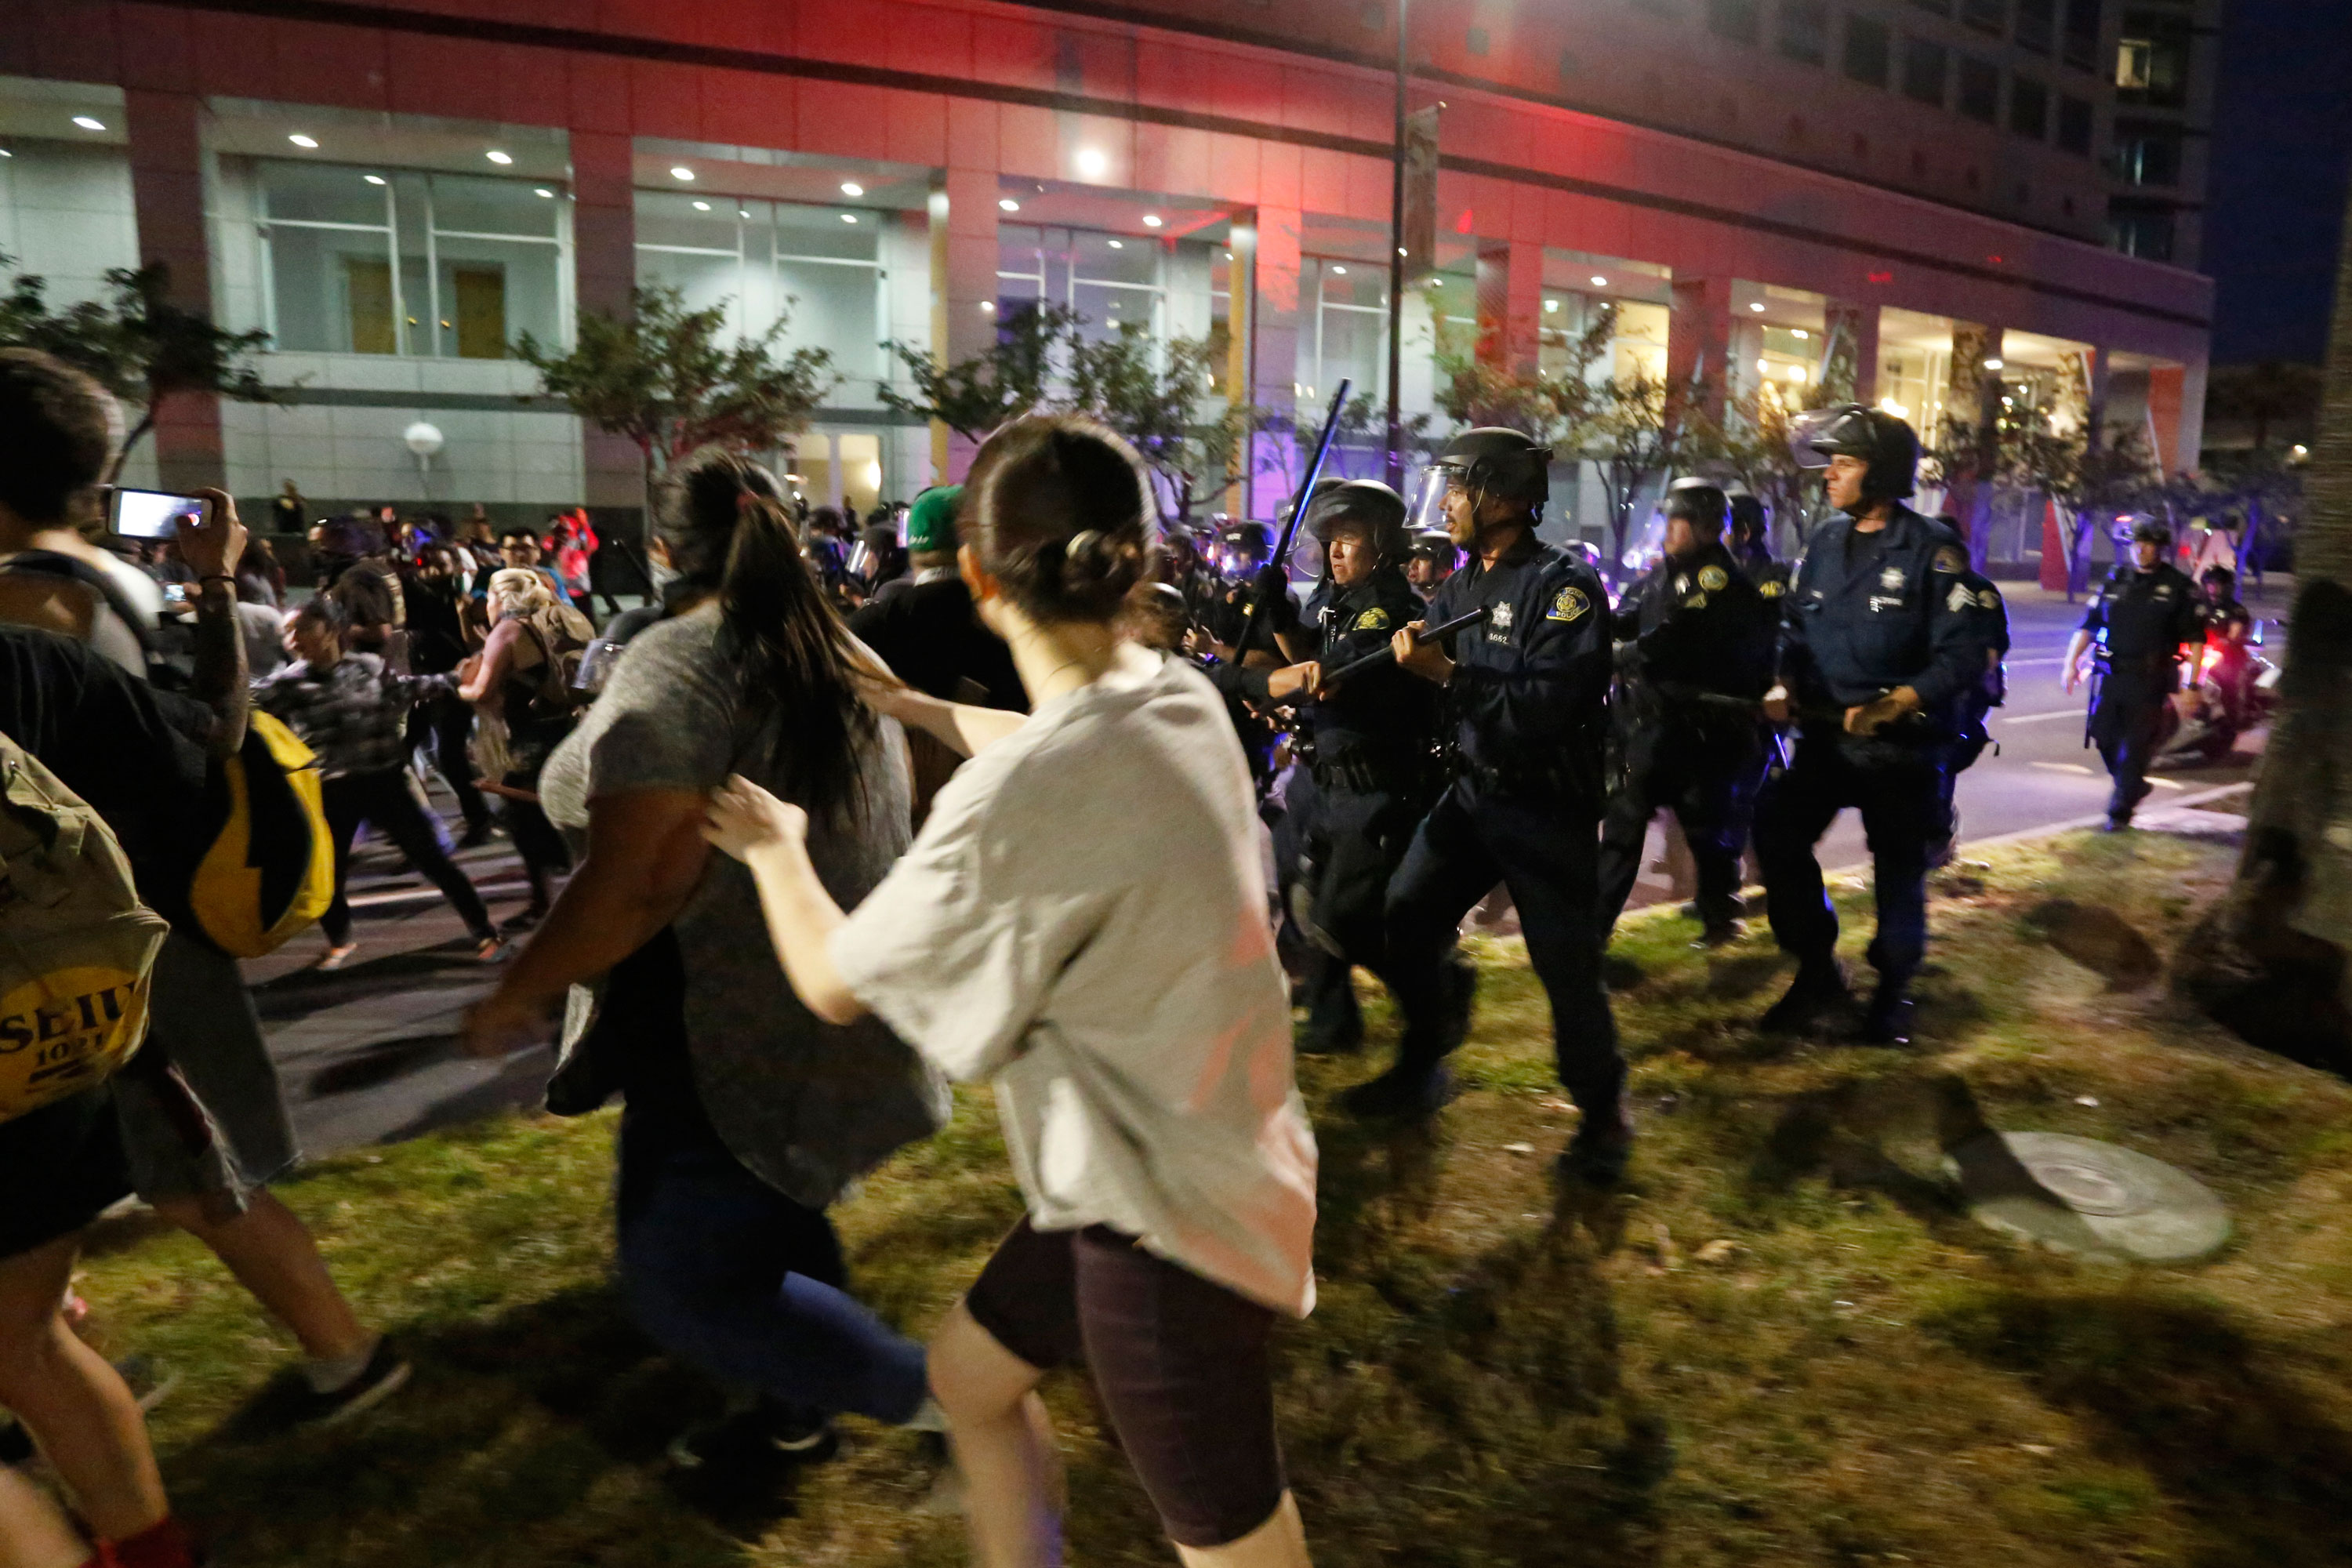 Trump Supporters and Protesters Clash in Streets at San Jose Rally